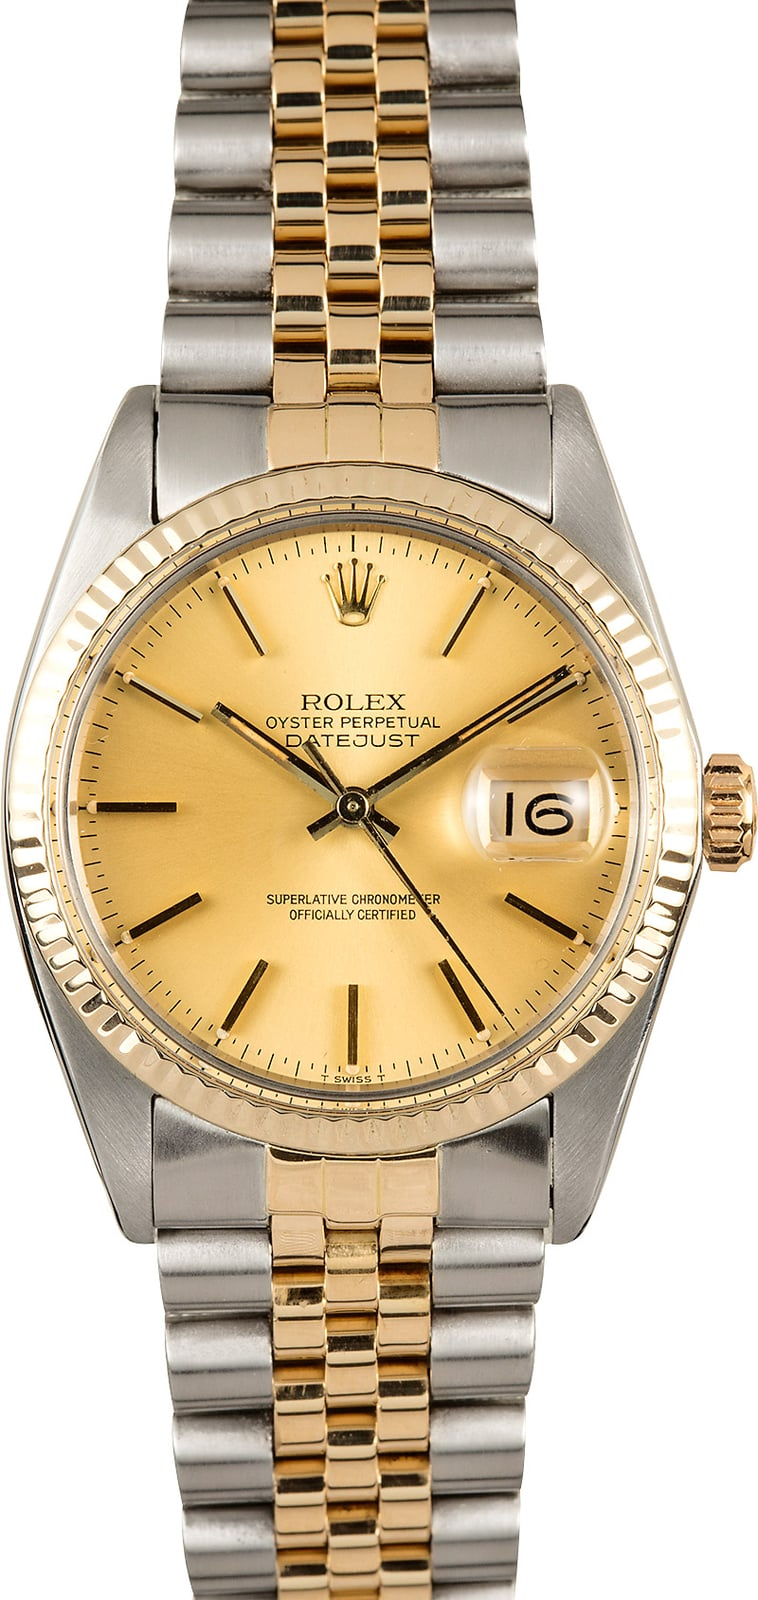 Used Rolex Submariner >> Rolex Datejust 16013 Certified Pre-Owned Watch